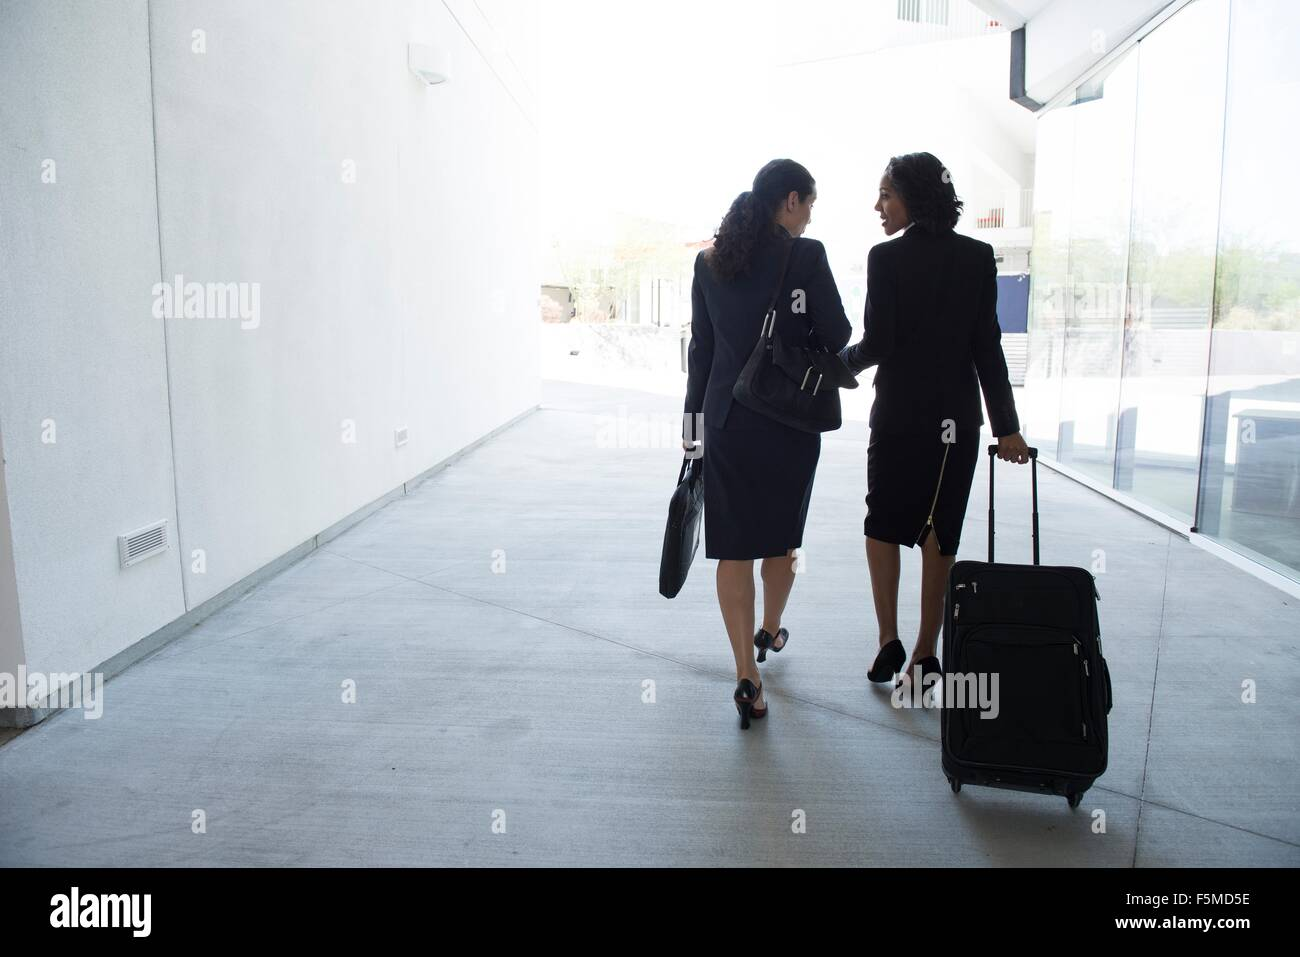 Two businesswomen in walkway, pulling suitcase, rear view - Stock Image